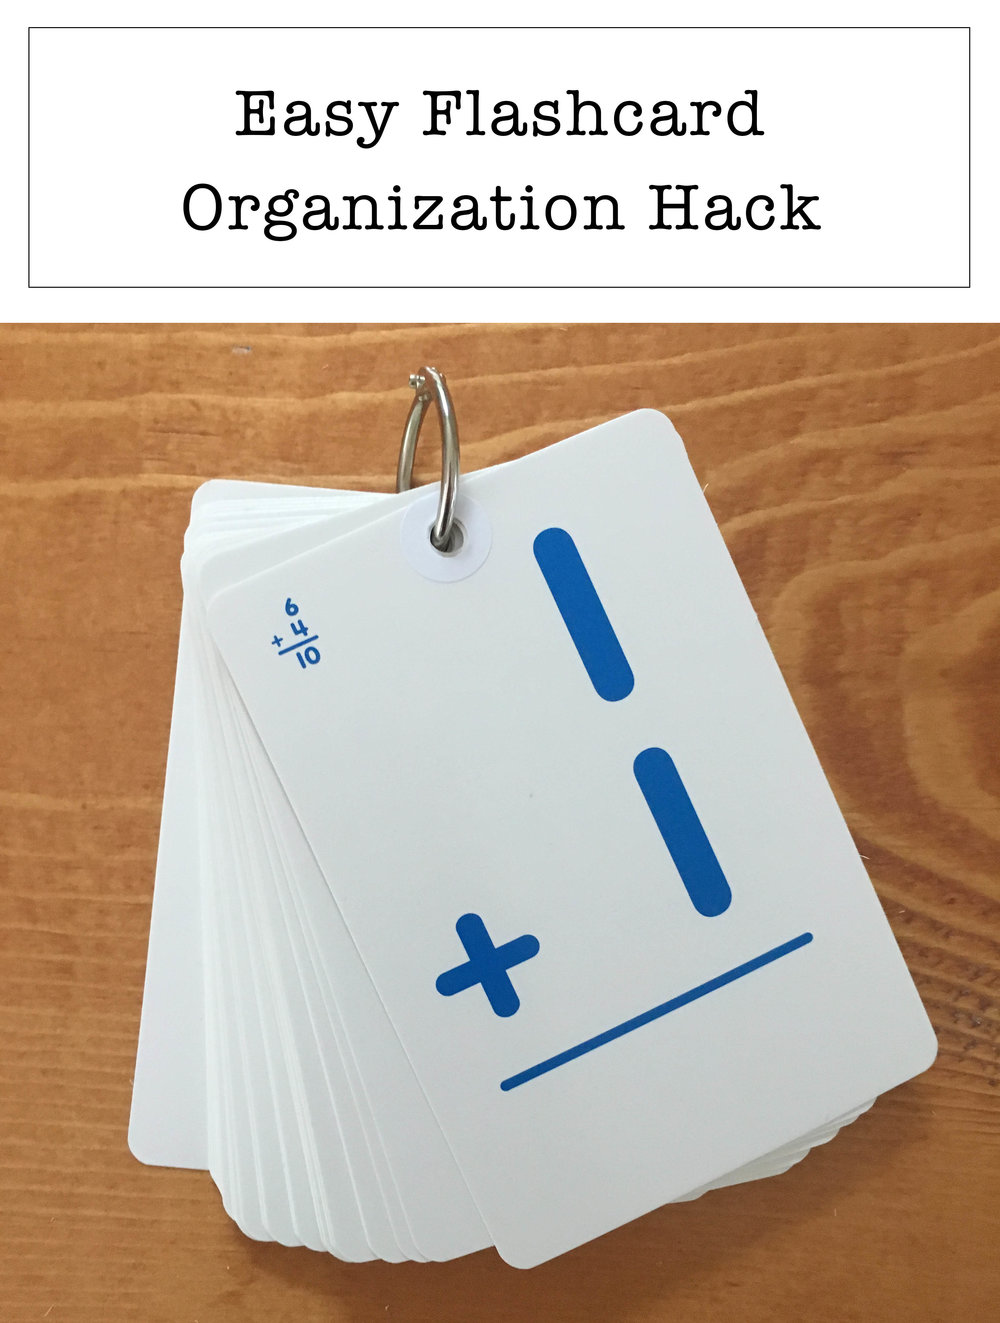 Easy Flashcard Organization Hack!